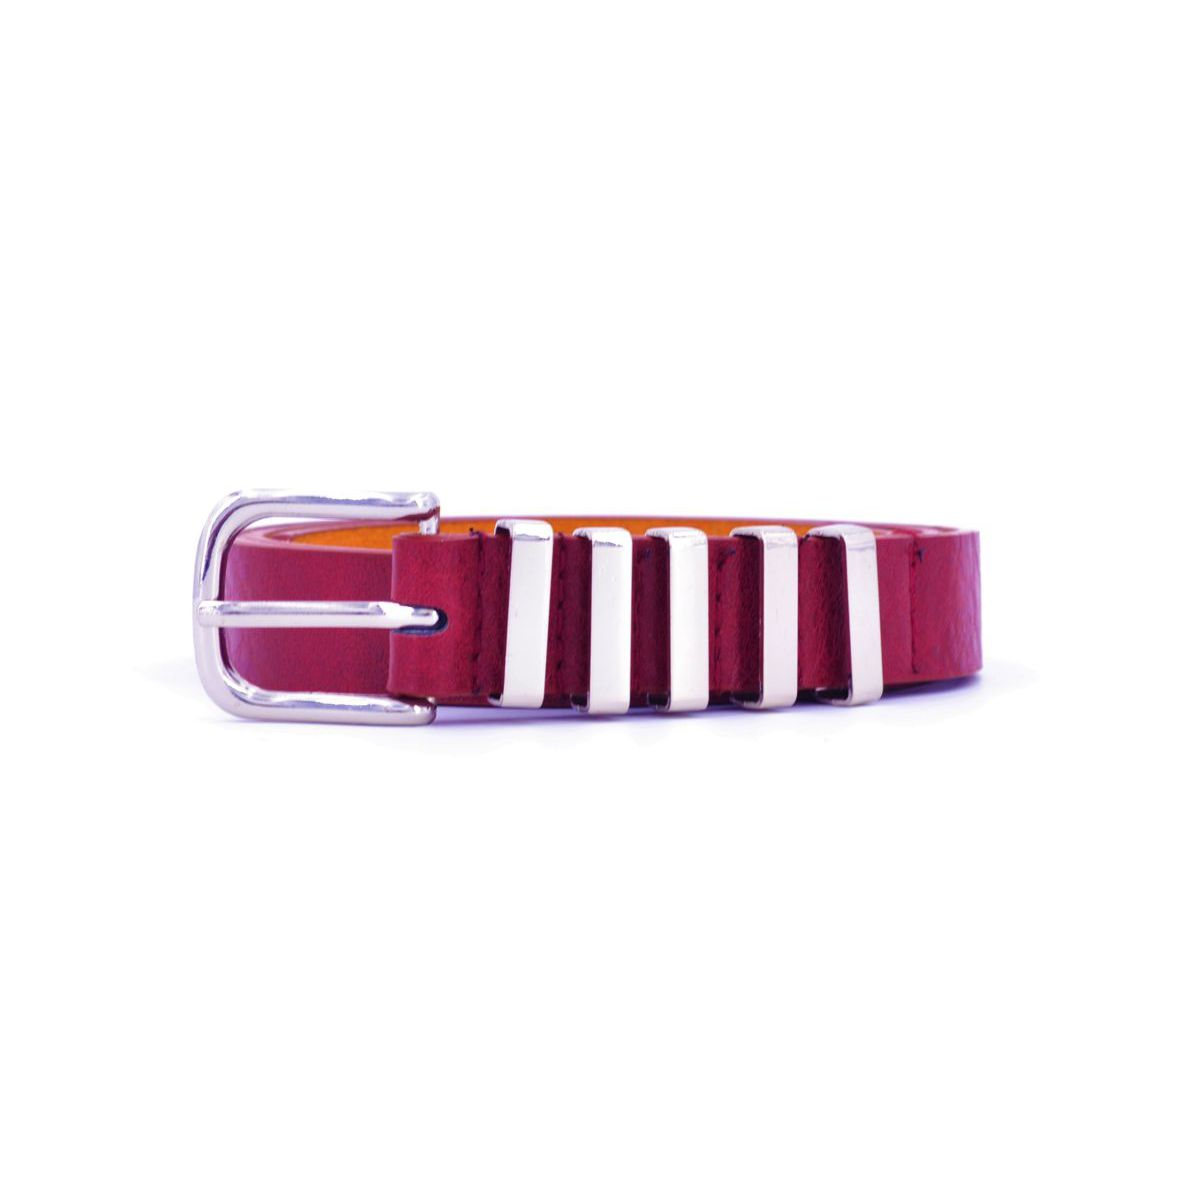 BURGUNDY 5PASS BELT Burgundy BRASS Workshop